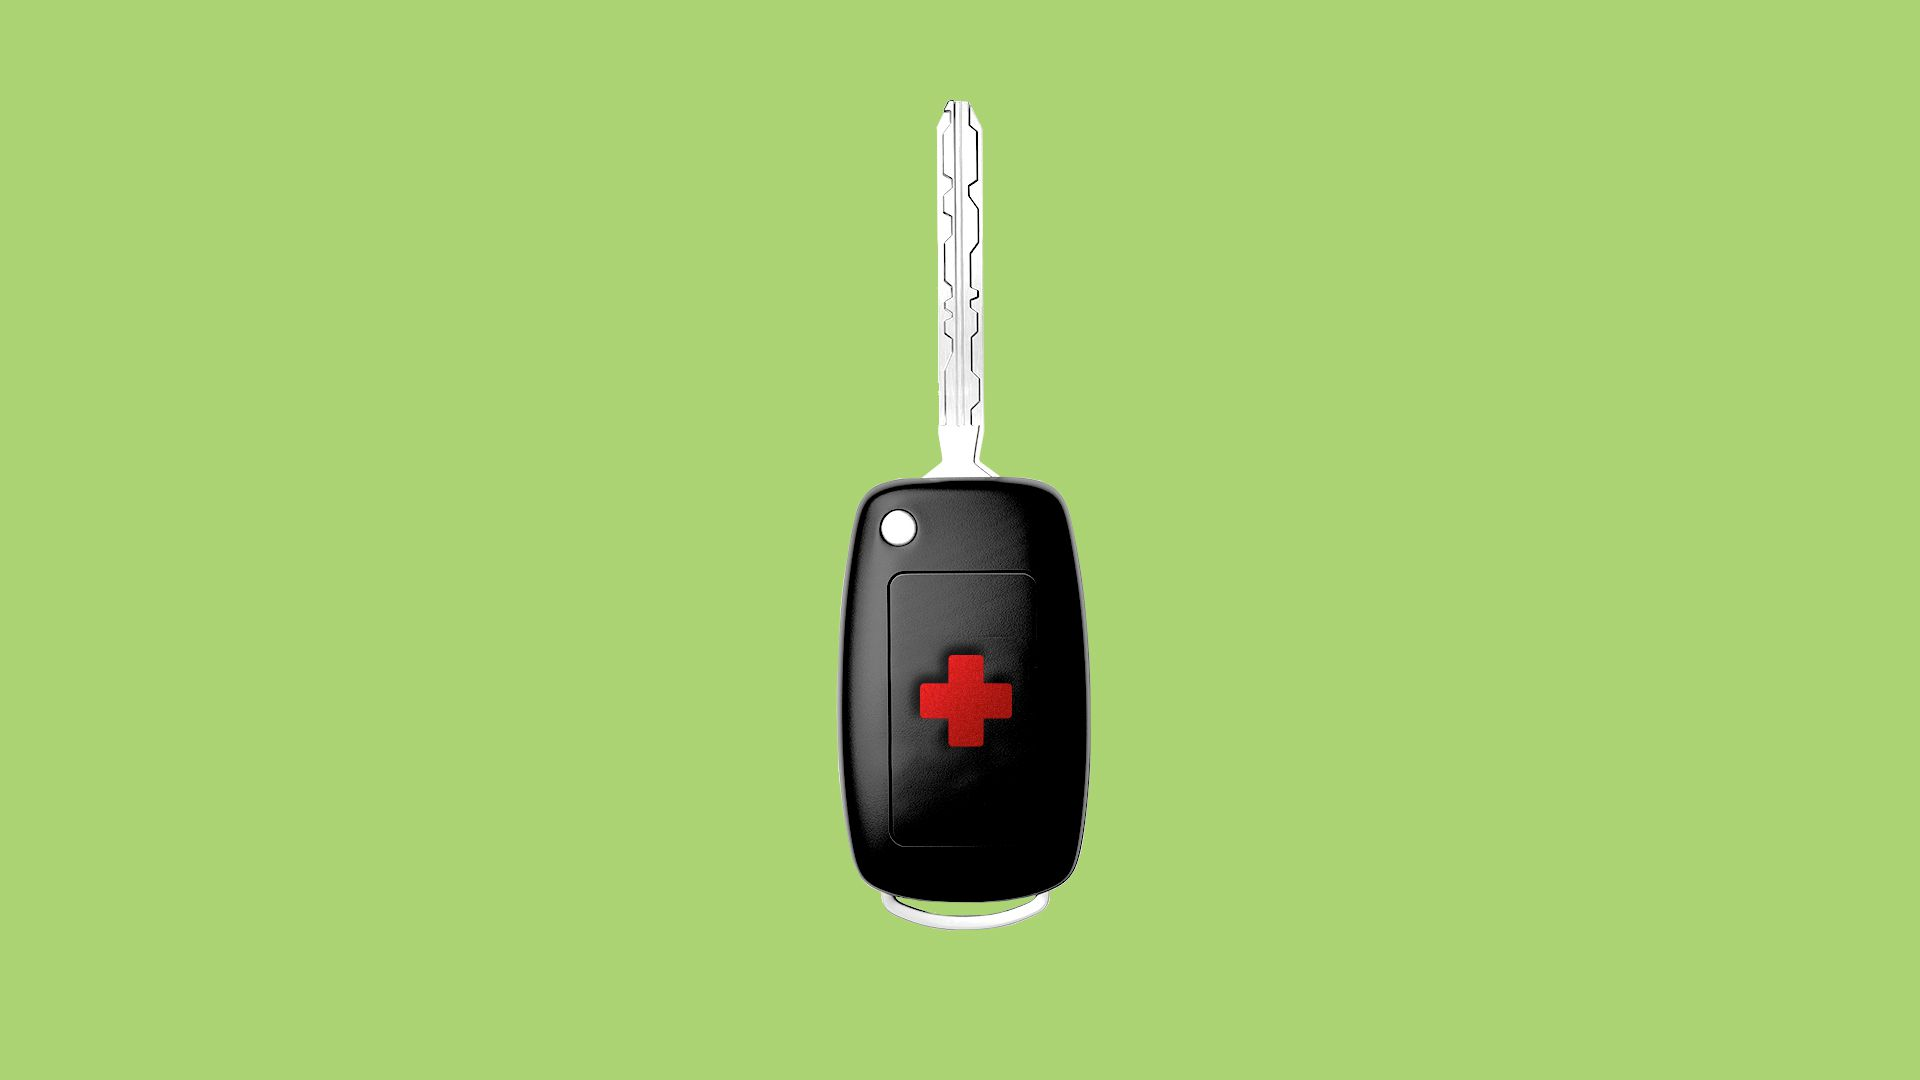 Illustration of a car key with a health plus on the unlock button.